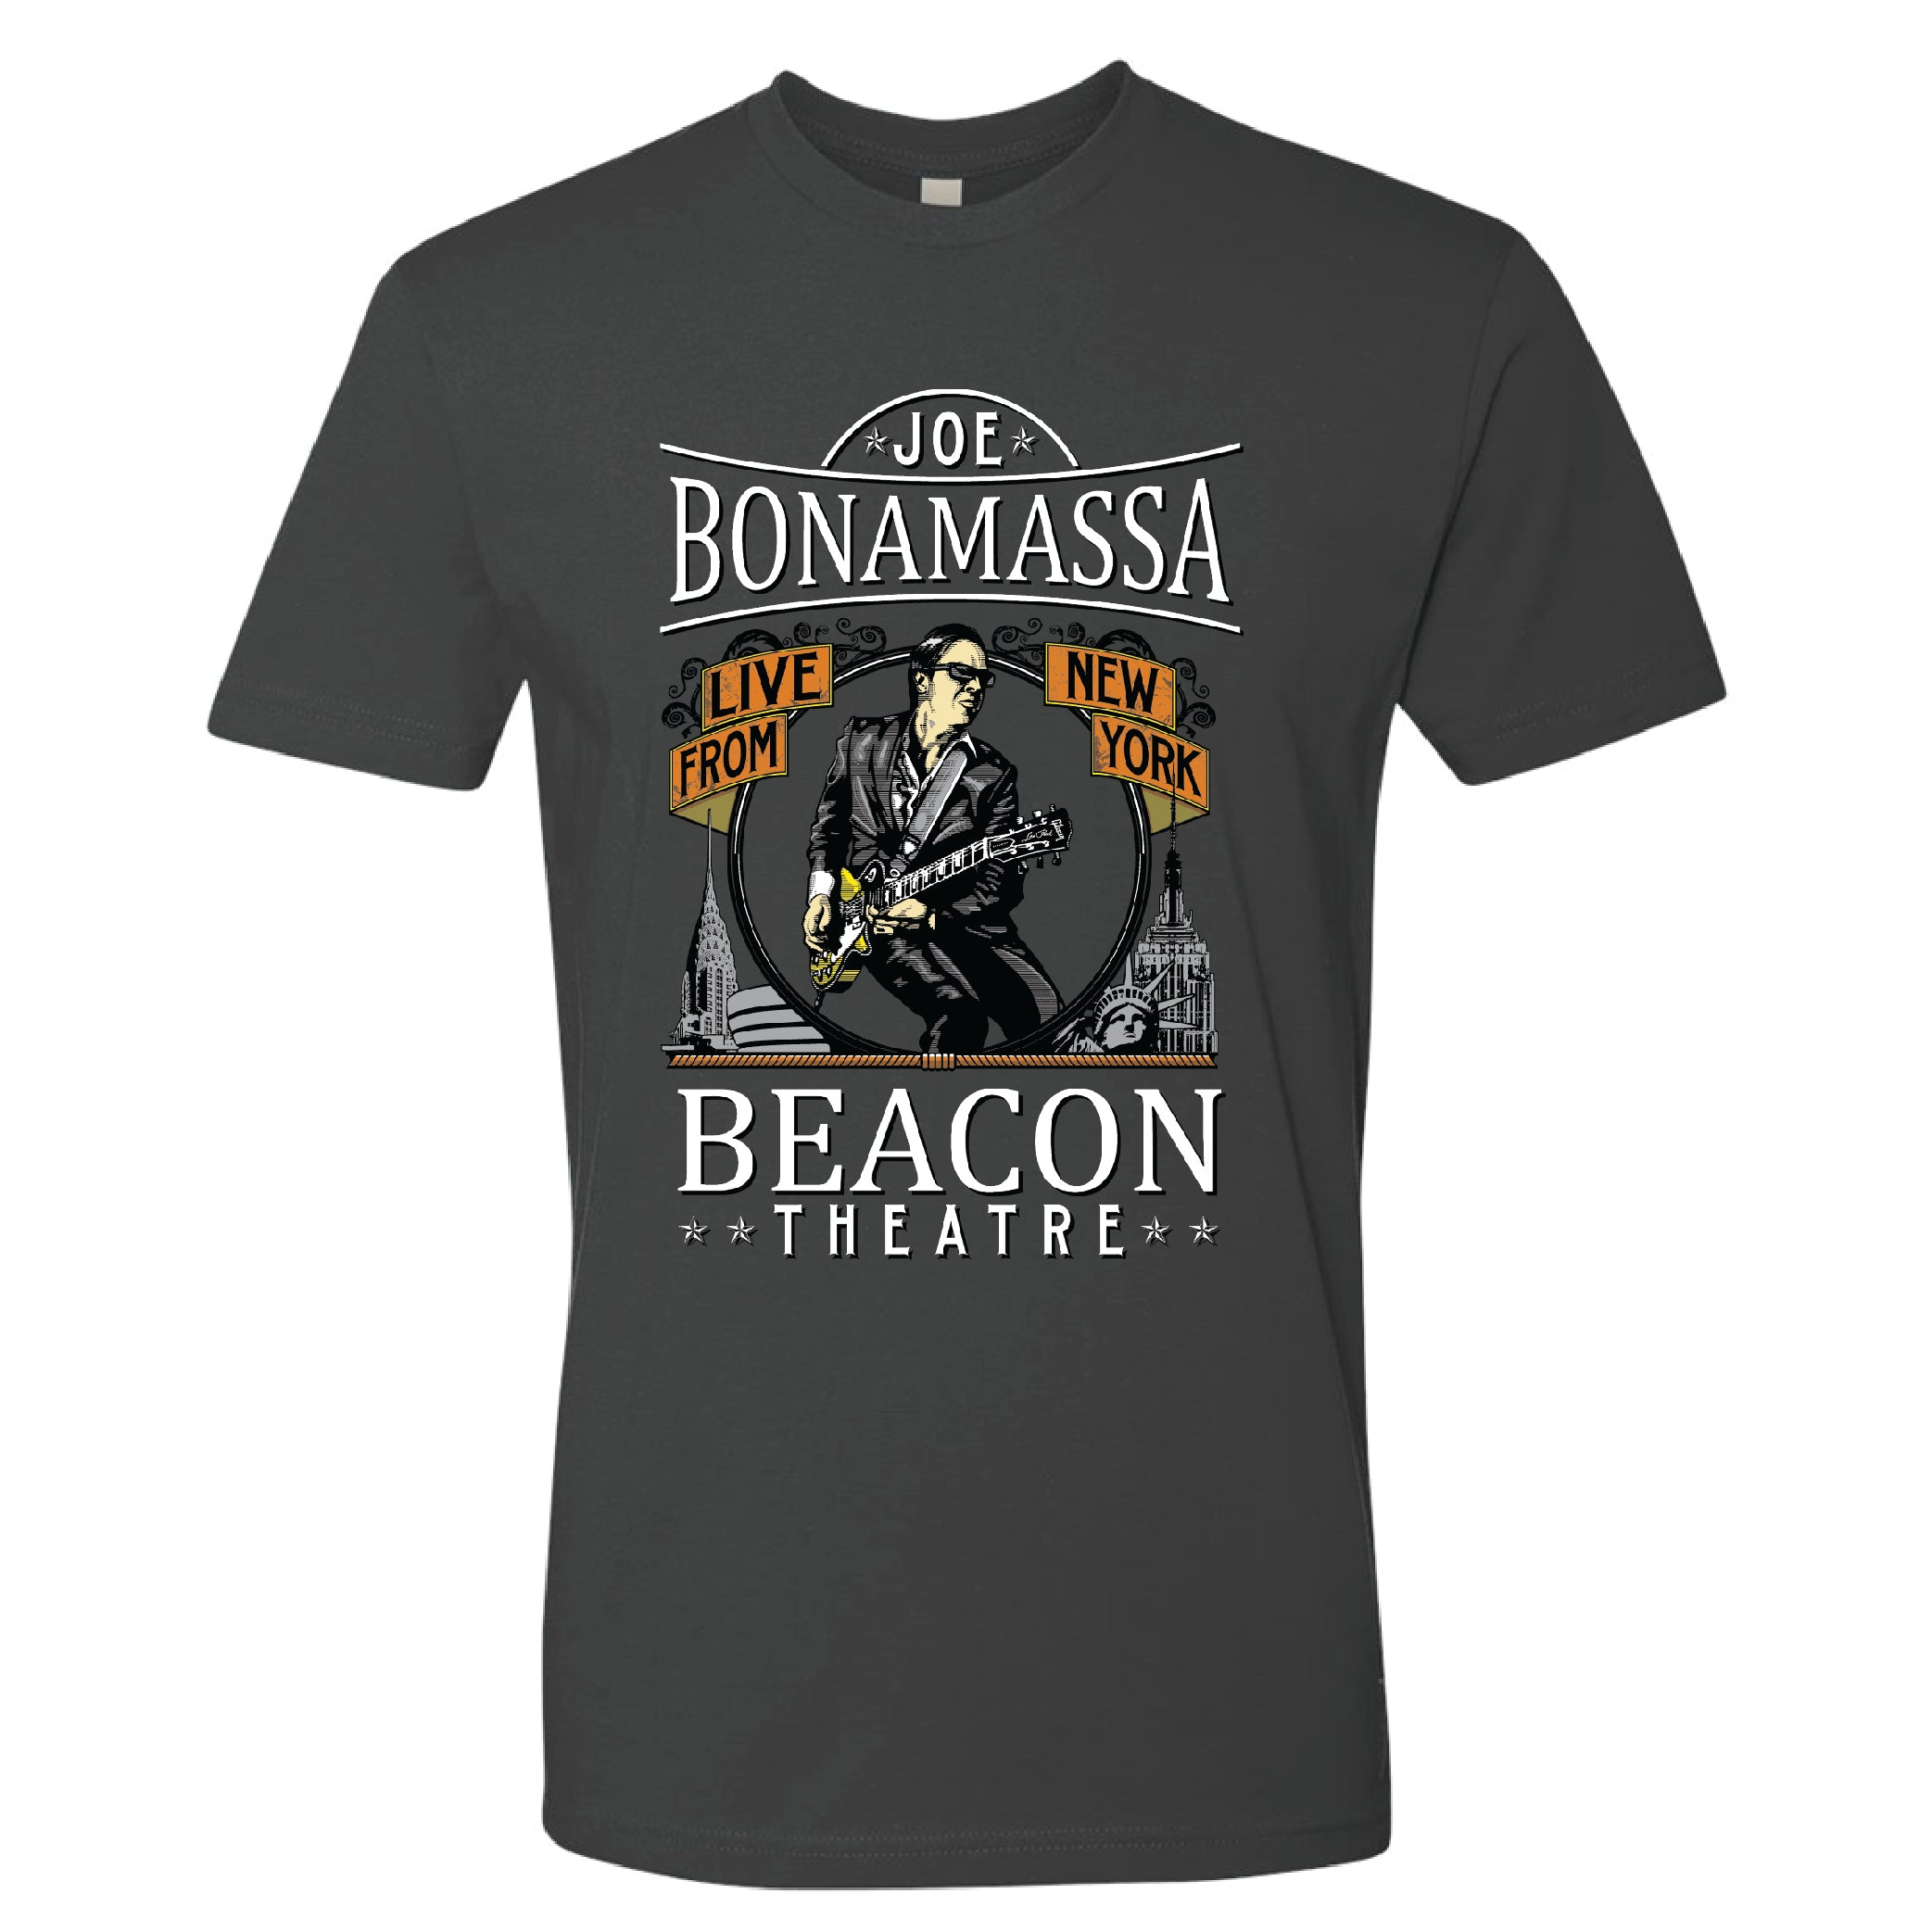 Beacon Theatre Live From New York T-Shirt (Unisex)